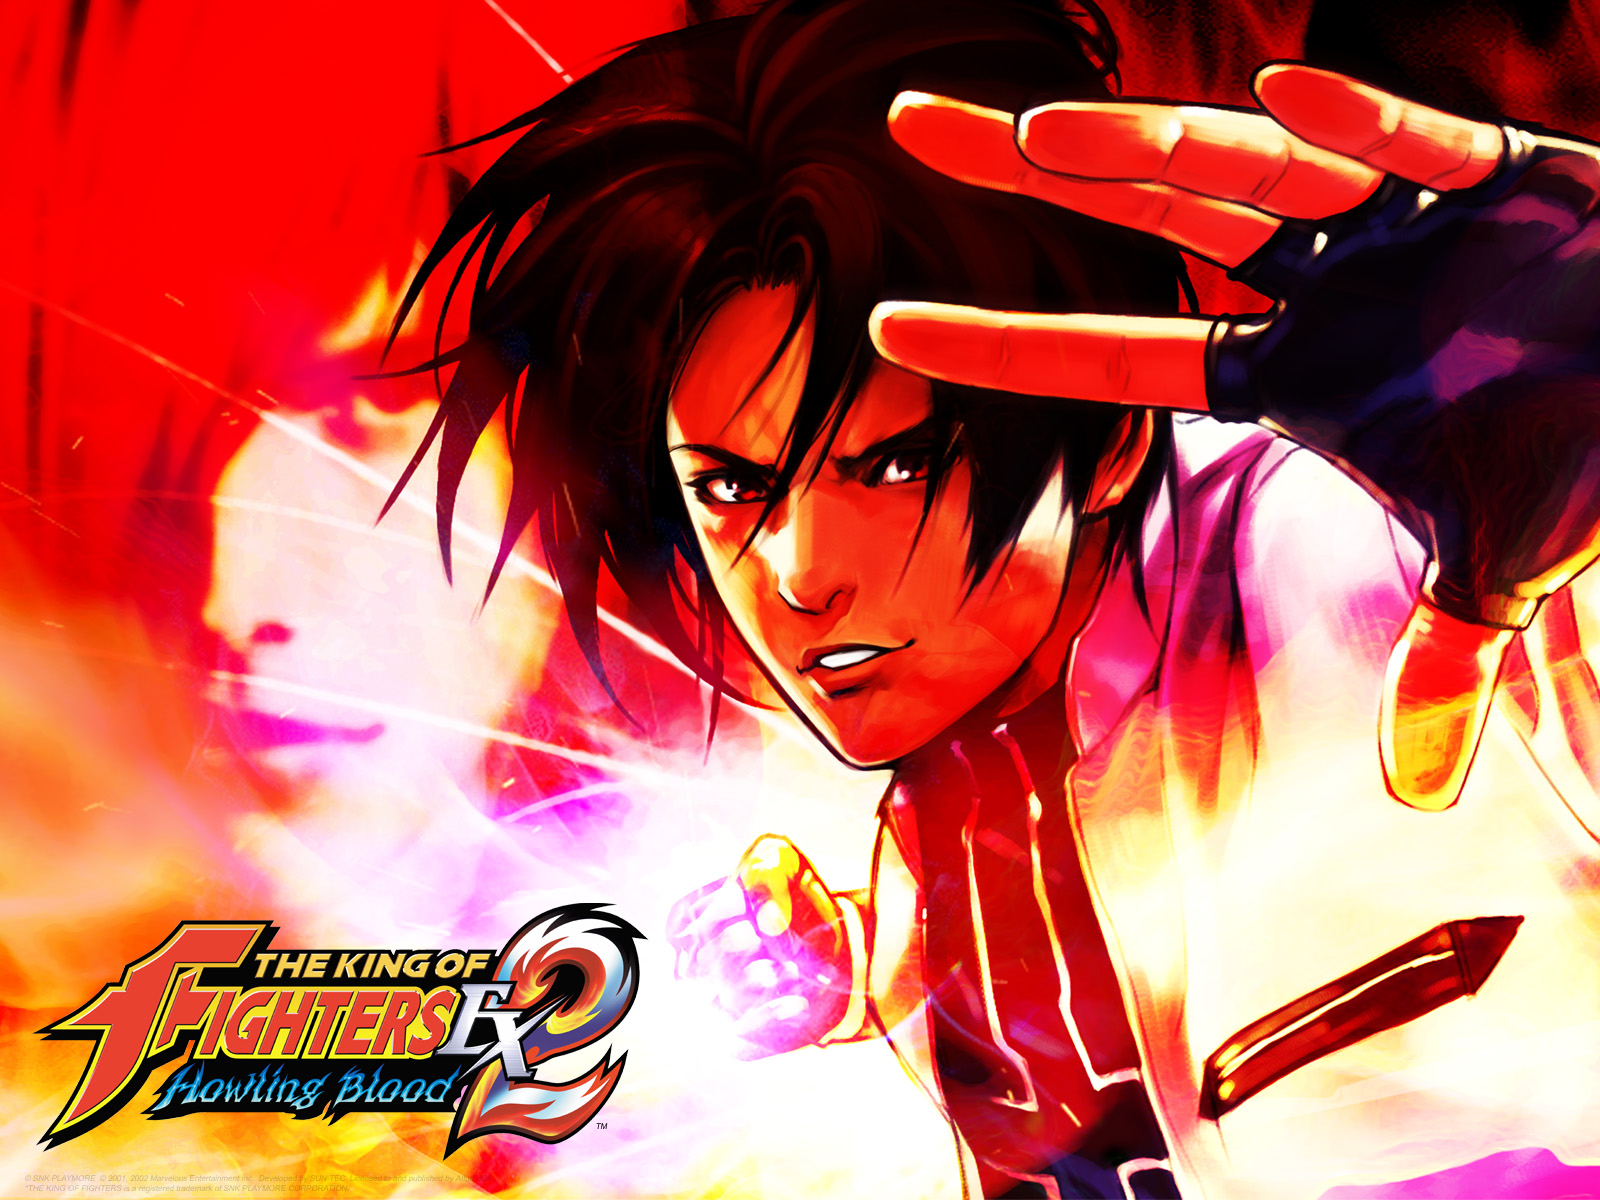 Free Download The King Of Fighters Wallpapers 1600x1200 For Your